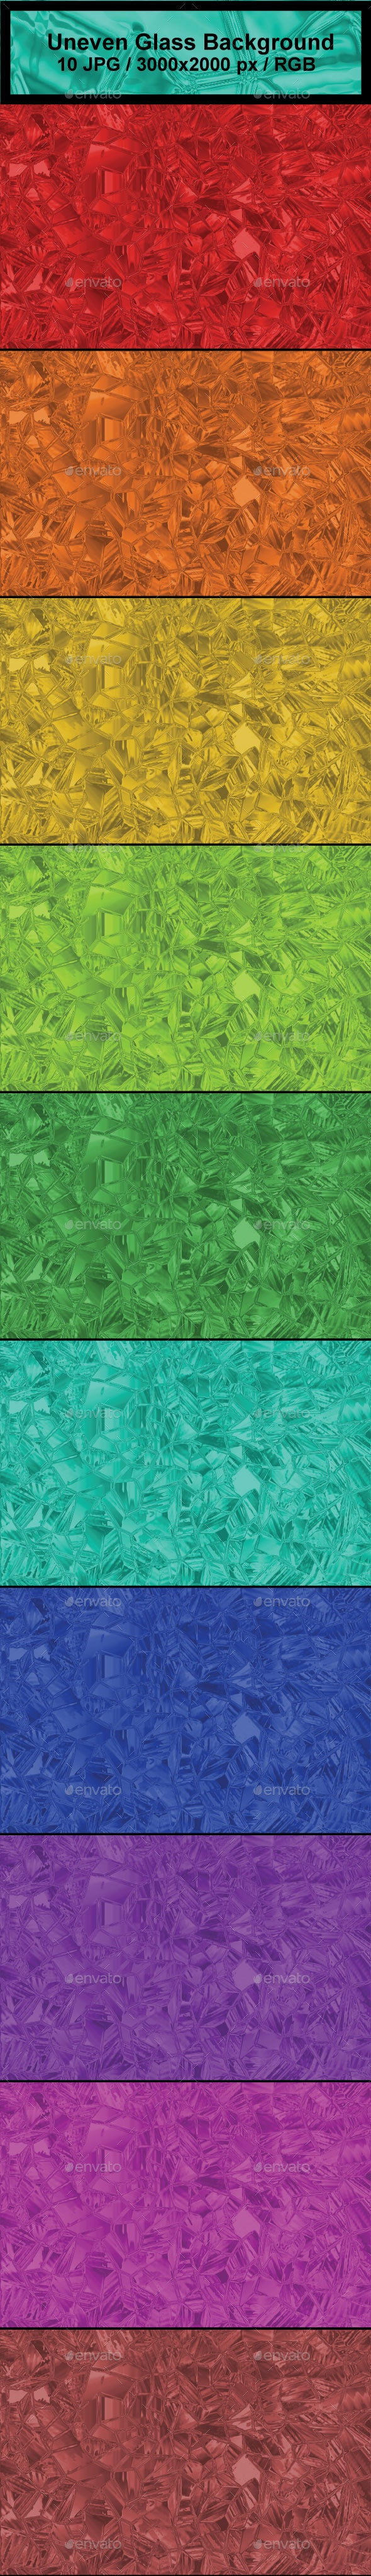 Uneven Glass Background - Abstract Backgrounds